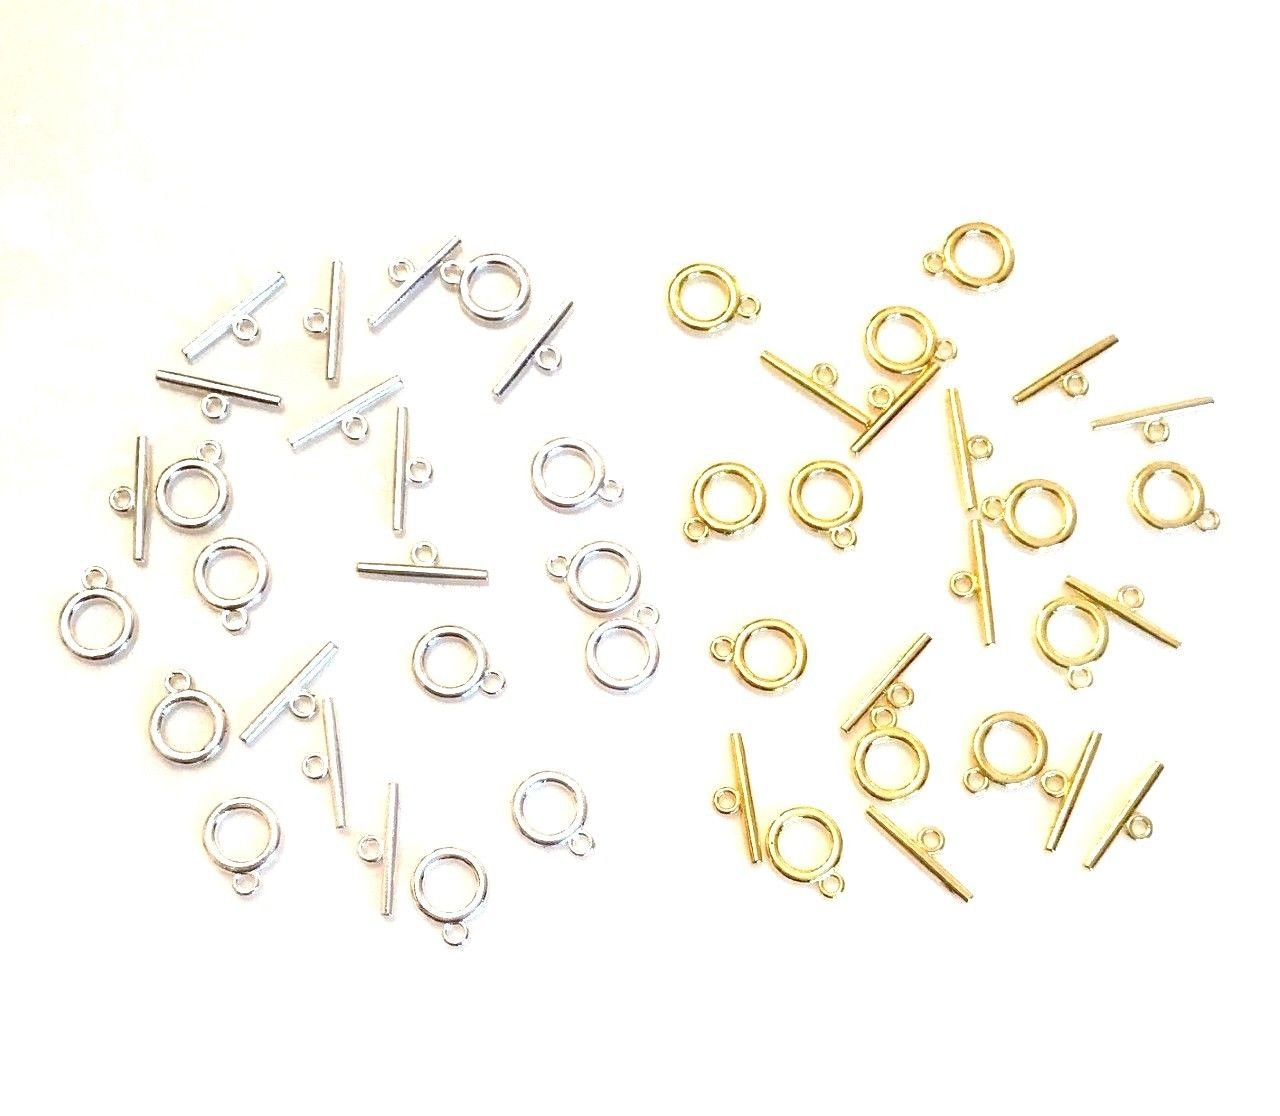 Angel Malone ® 24 (12 x SILVER & 12 GOLD) Plain Polished Silver Quality Round Toggle Clasps. GR8 for Leather & Kumihimo Projects...! Jewellery Making Findings